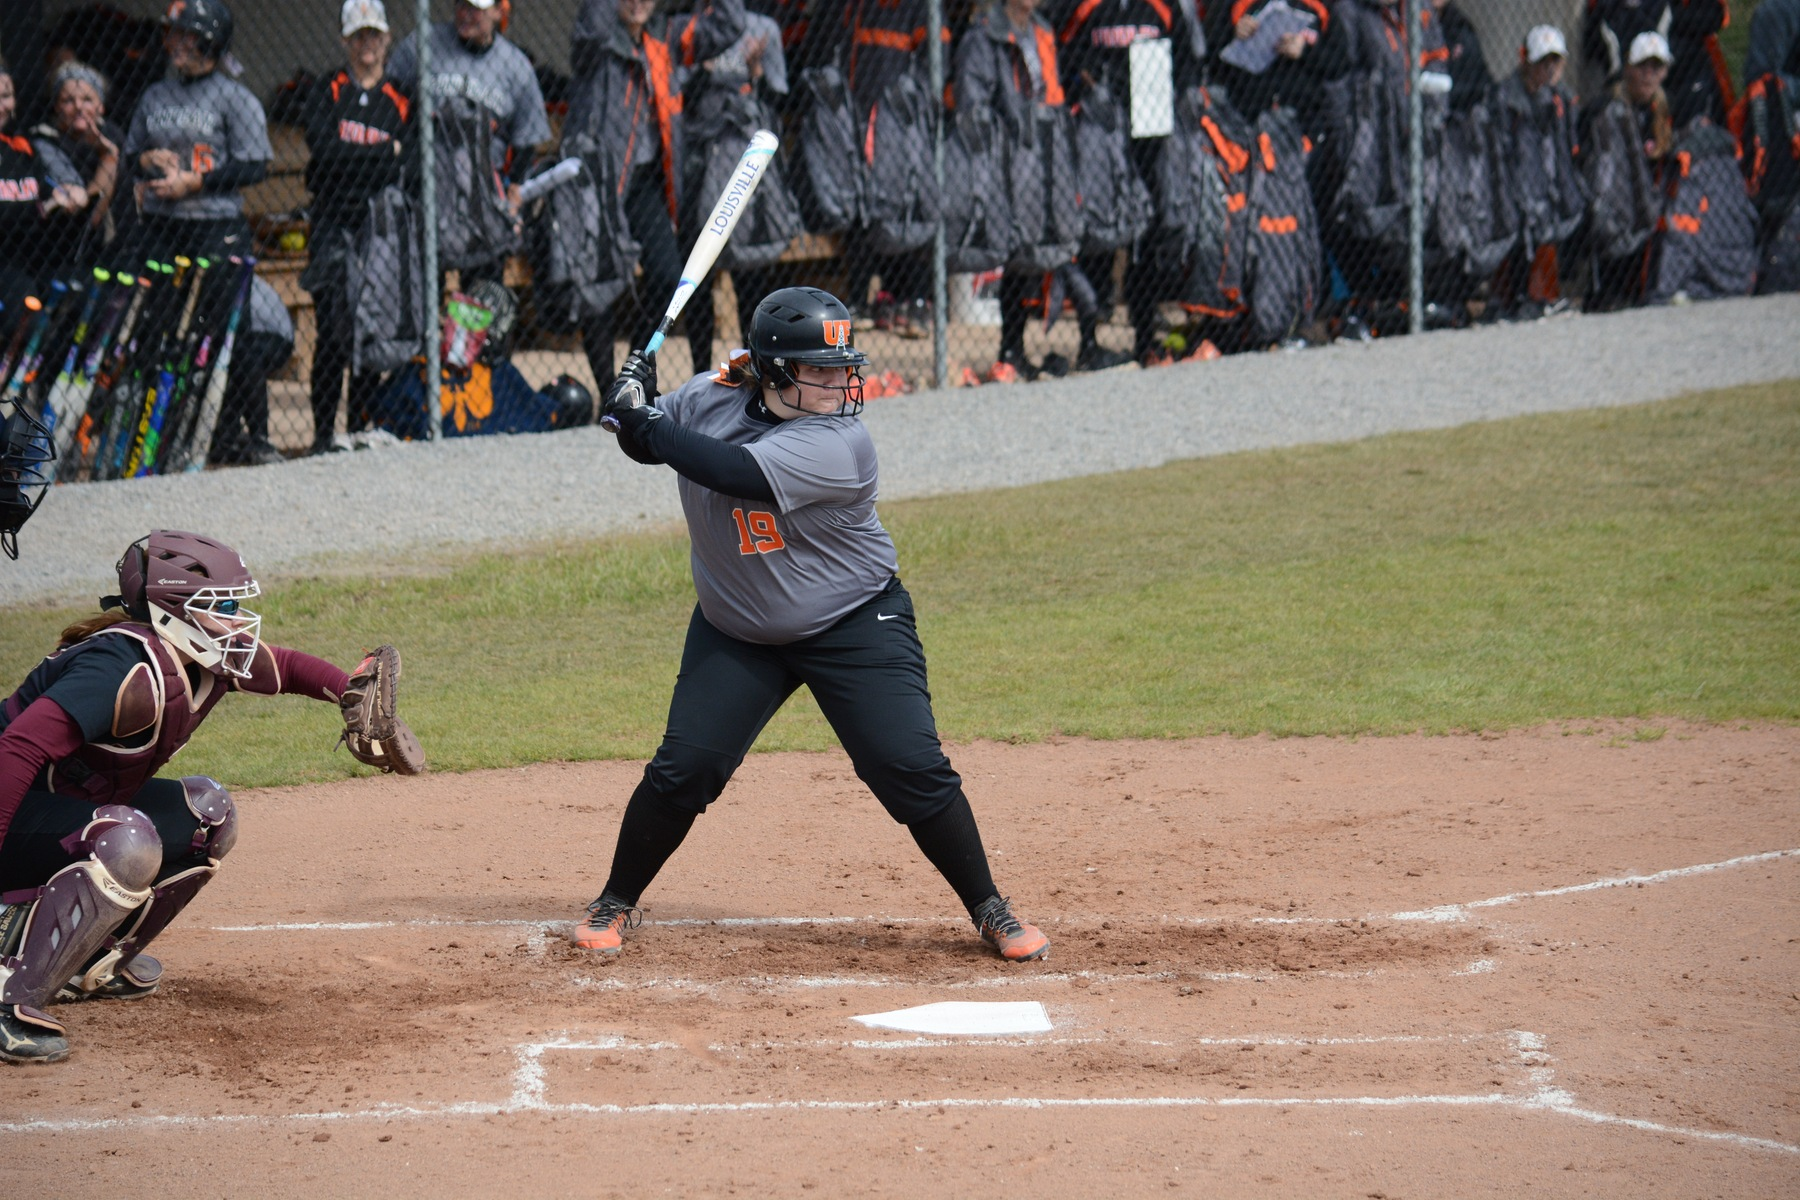 Oilers Move to 5-1 in the GLIAC | Sweep Walsh